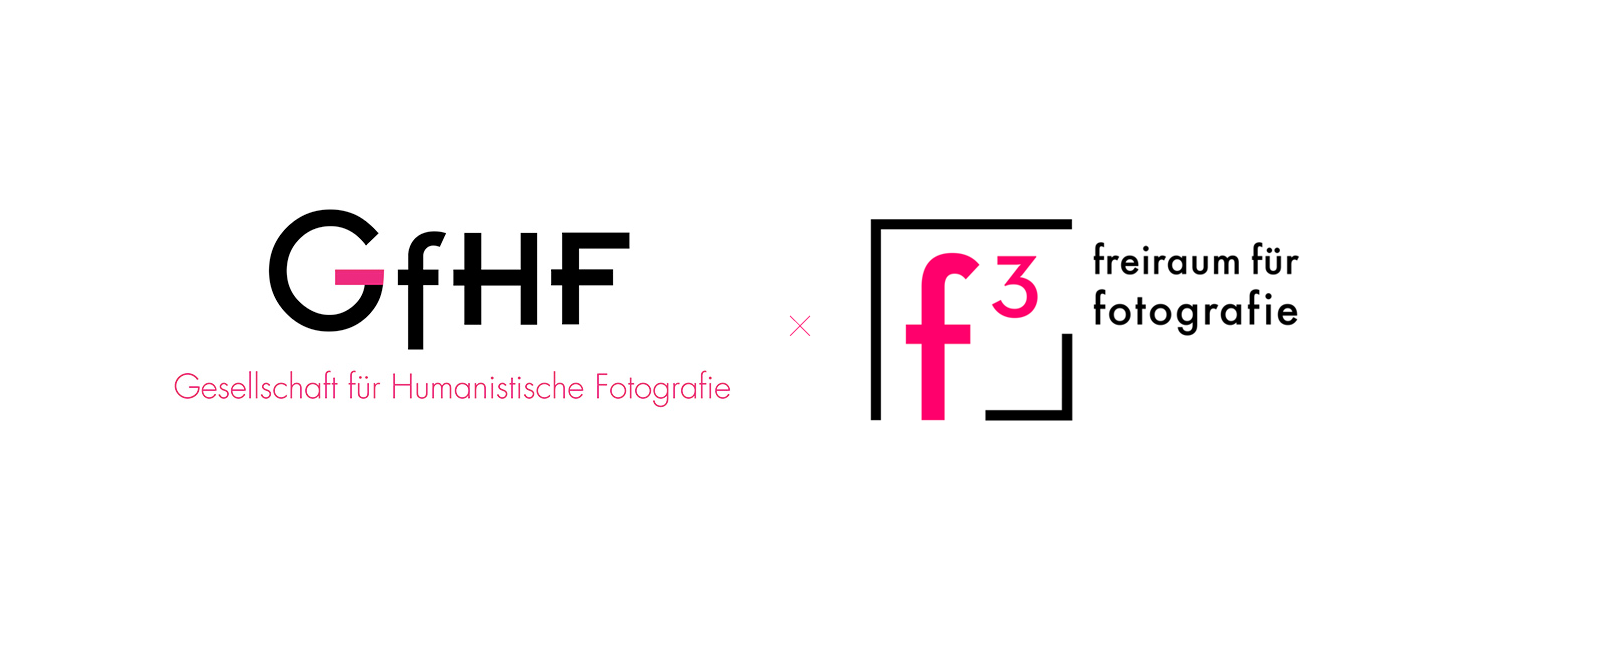 Bi-monthly Jour Fixe by the Society for Humanistic Photography / Gesellschaft für Humanistische Fotografie (GfHF) at f³ – freiraum für fotografie